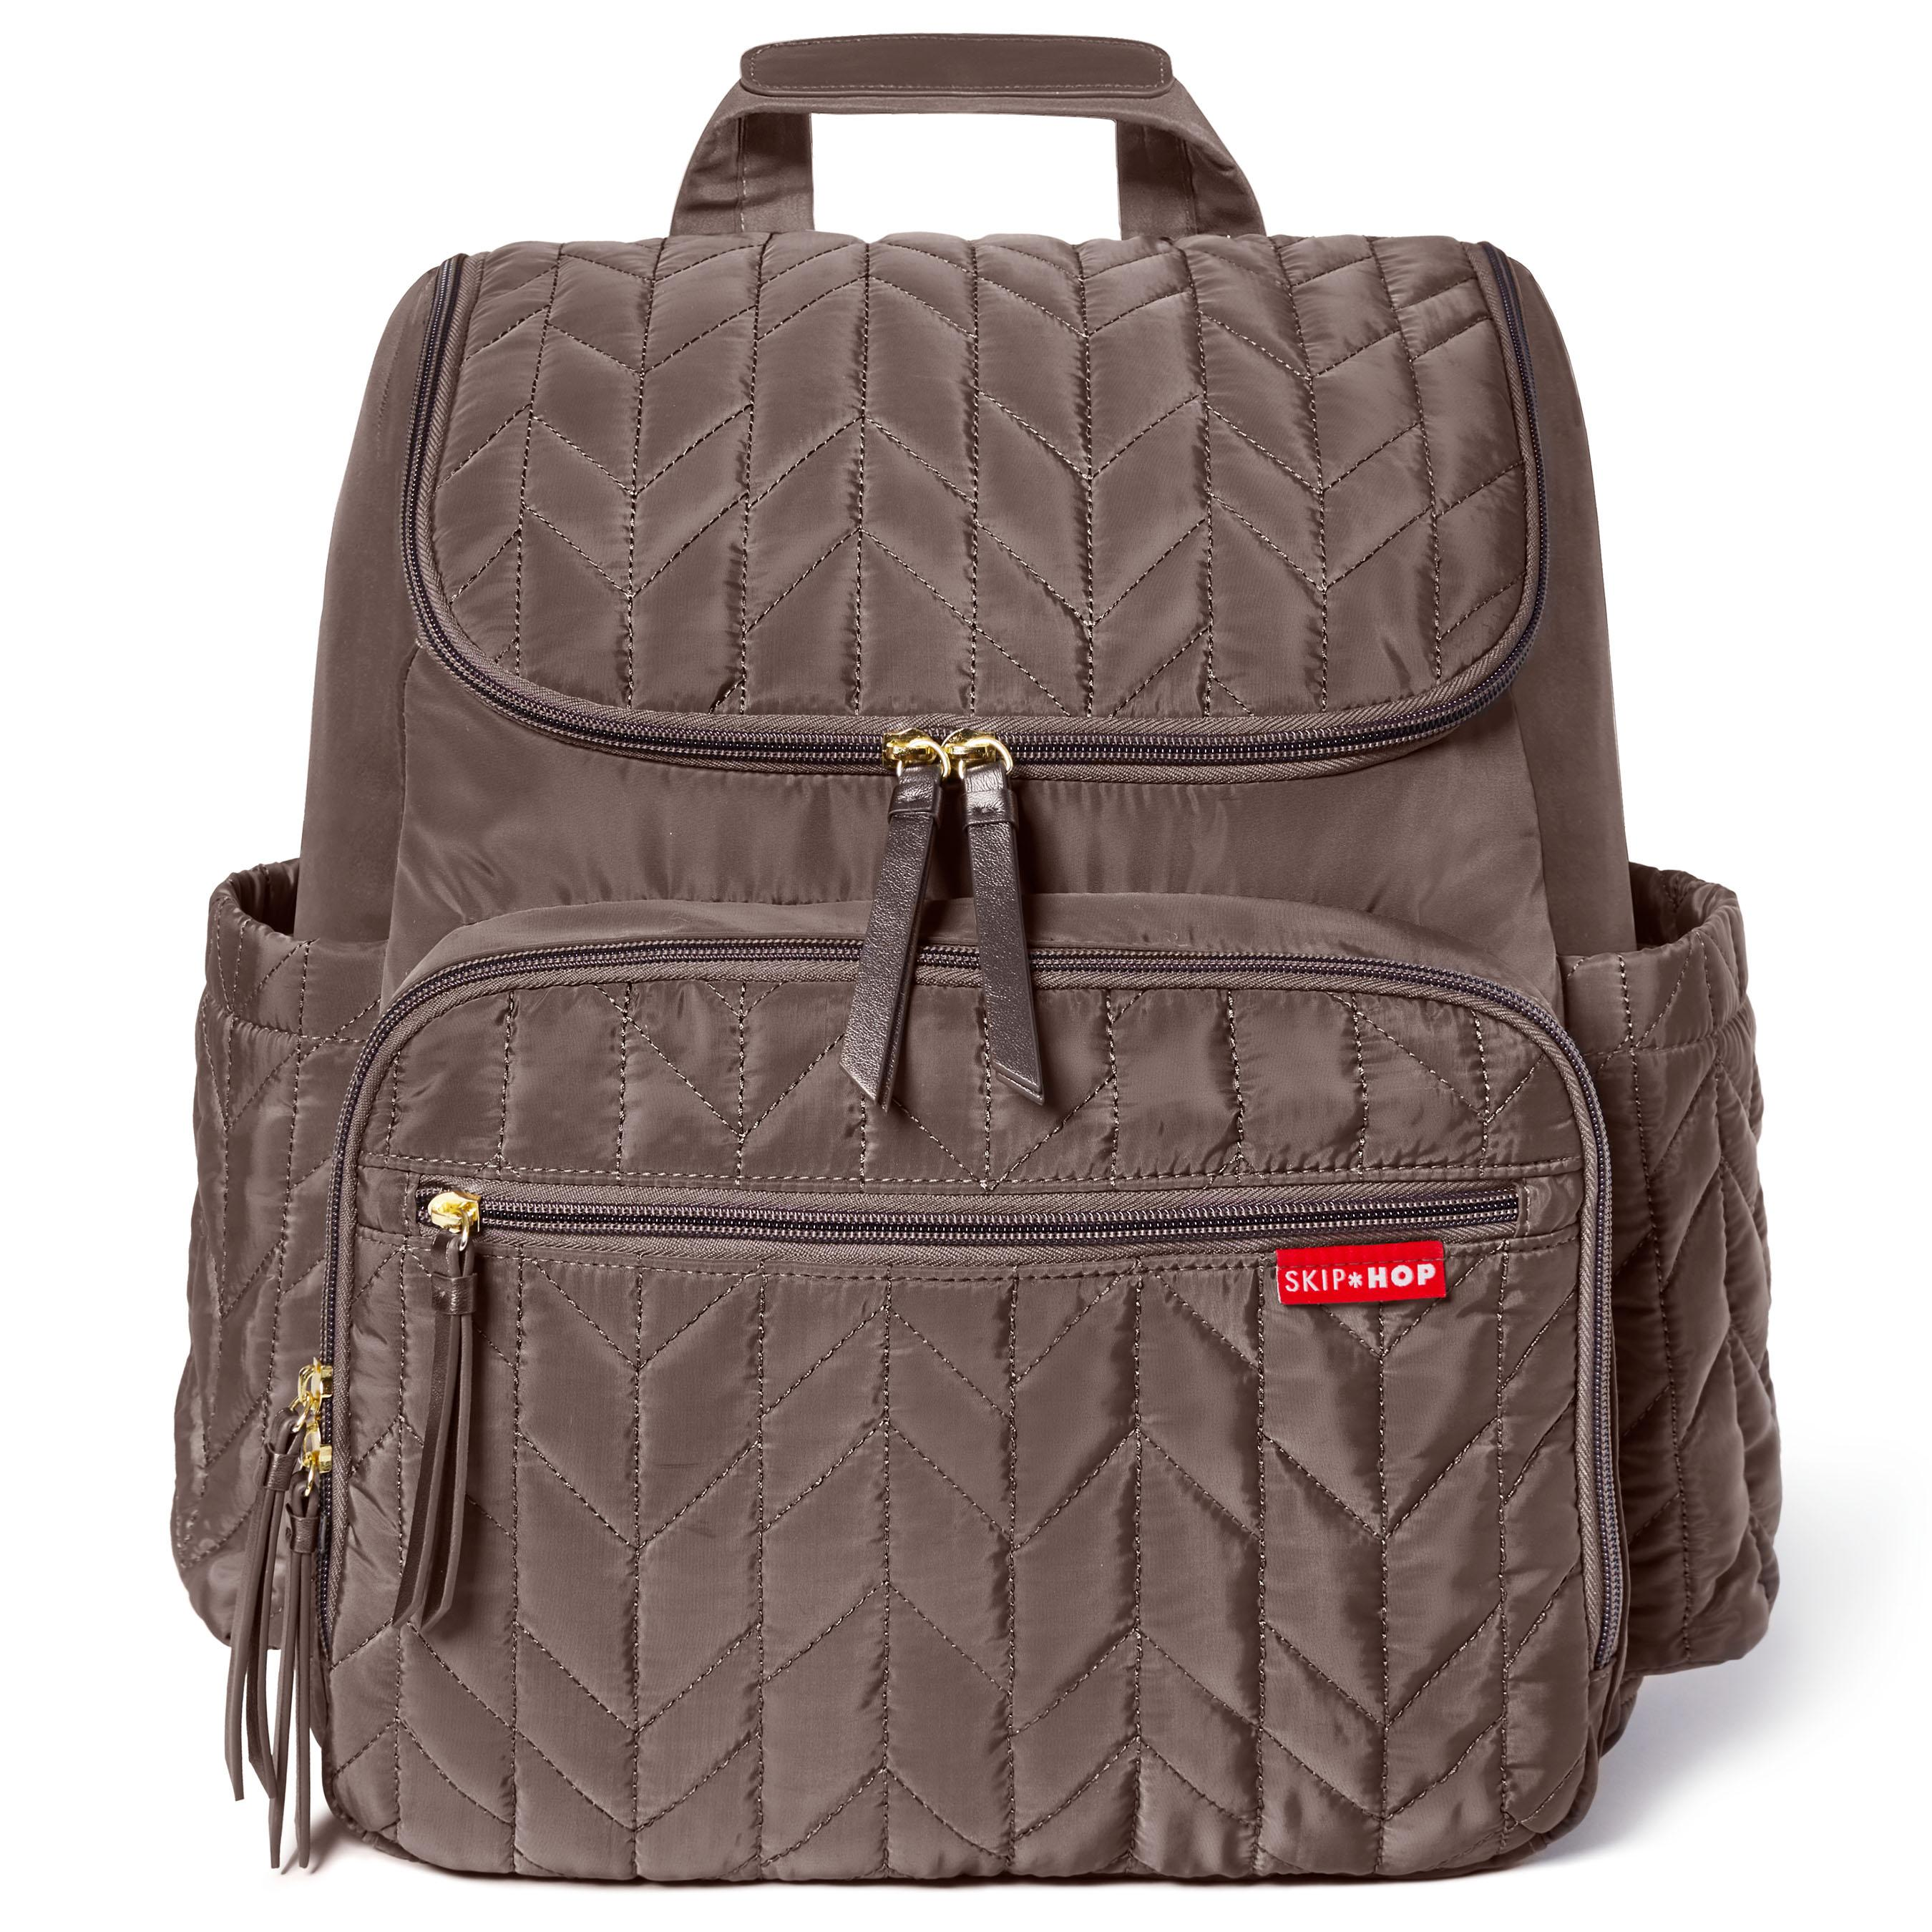 e3e28c17441232 Diaper Bags for sale - Babies Diaper Bags online brands, prices ...